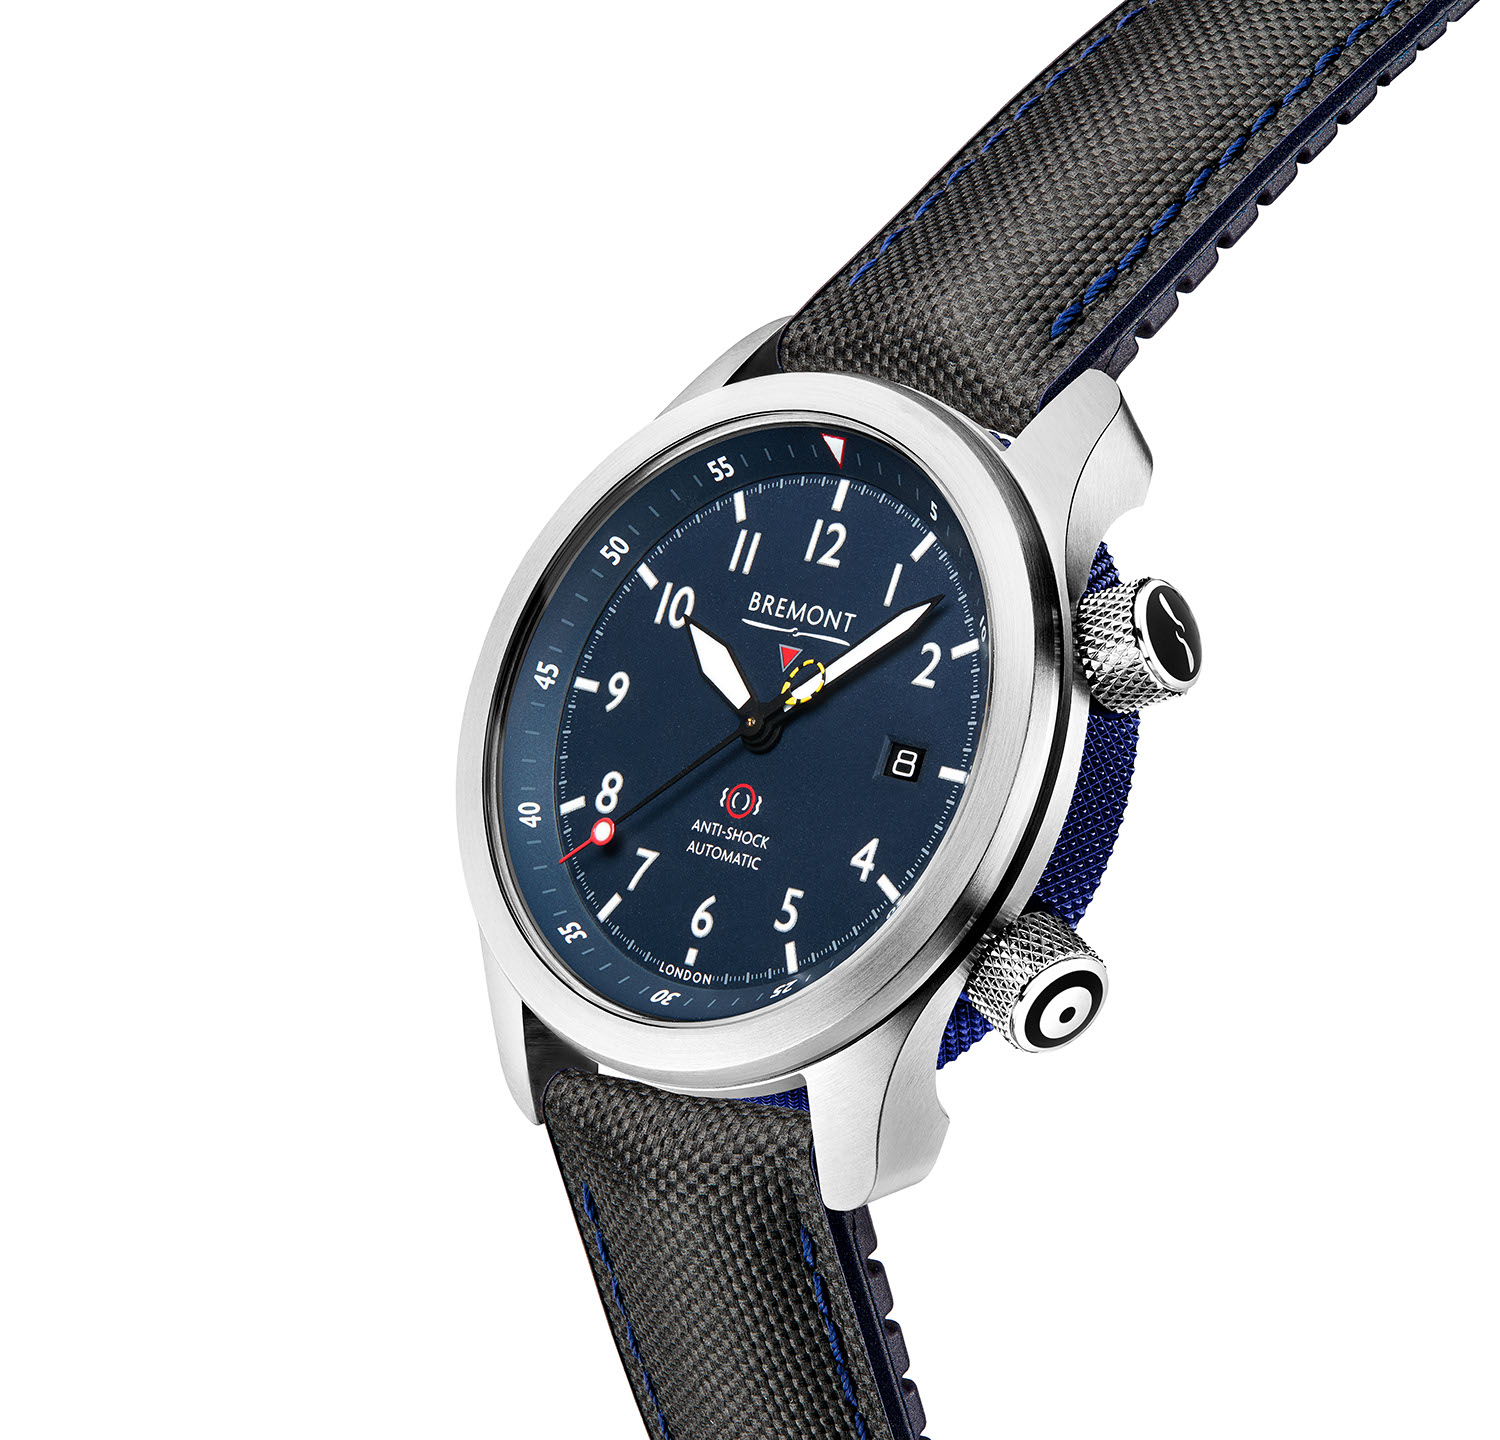 Side profile of Bremont's updated 2020 MBII in the blue dial variation